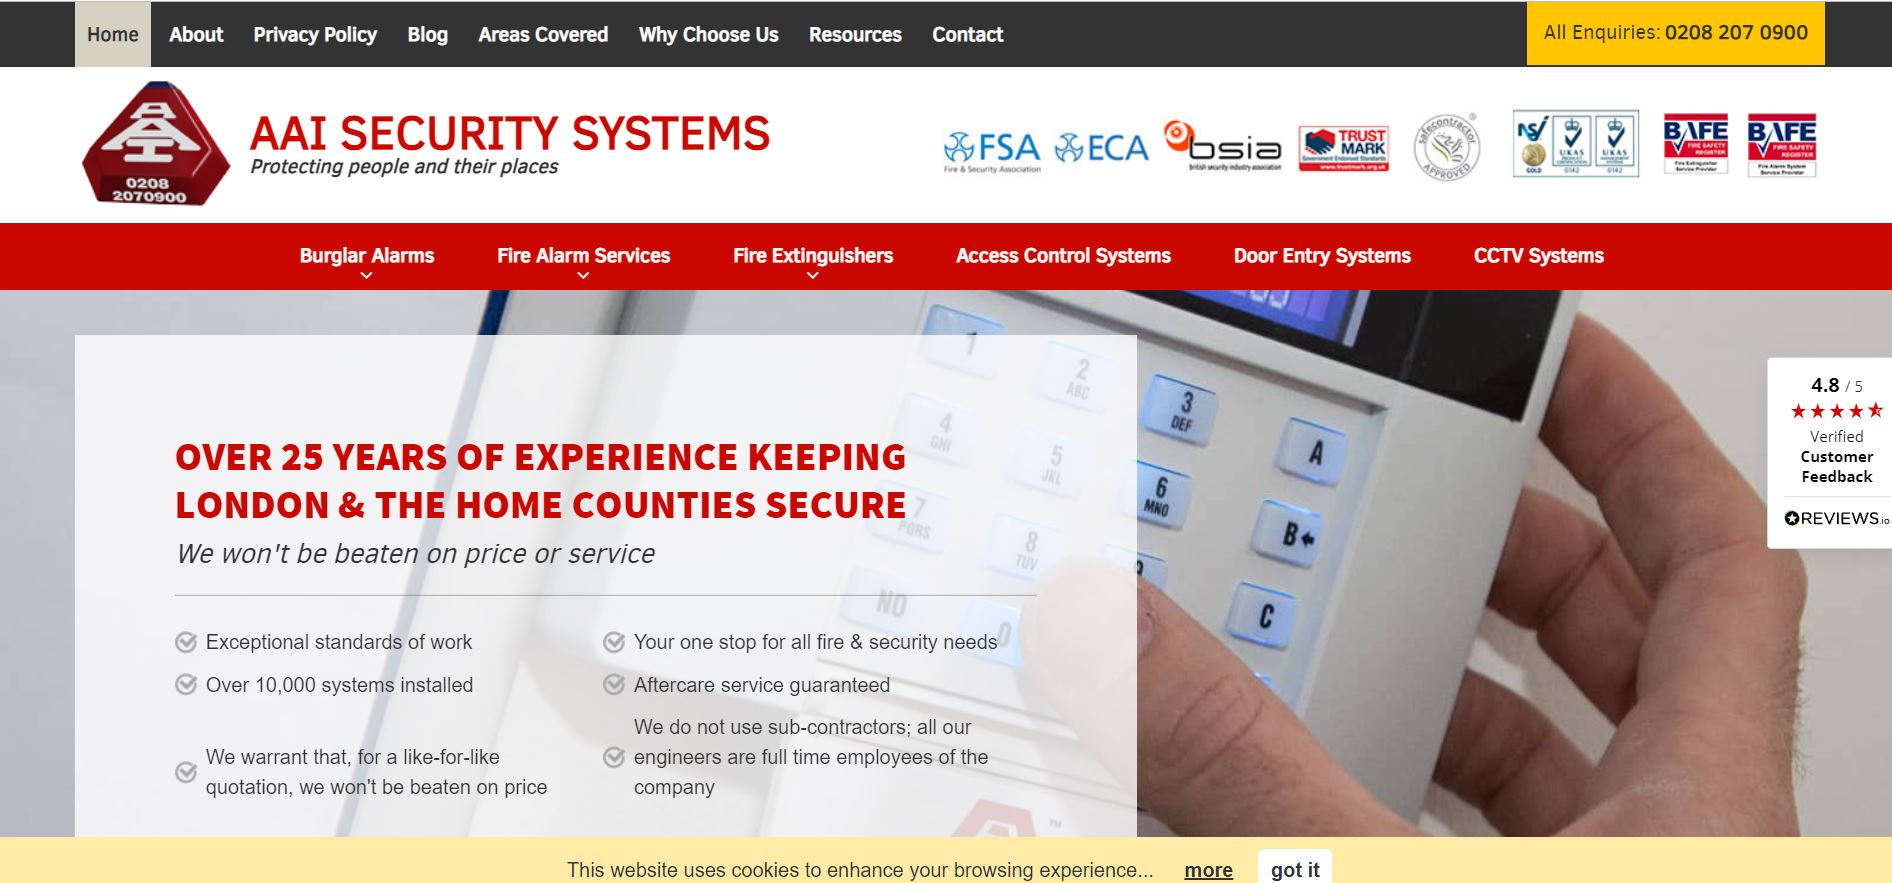 aai security systems